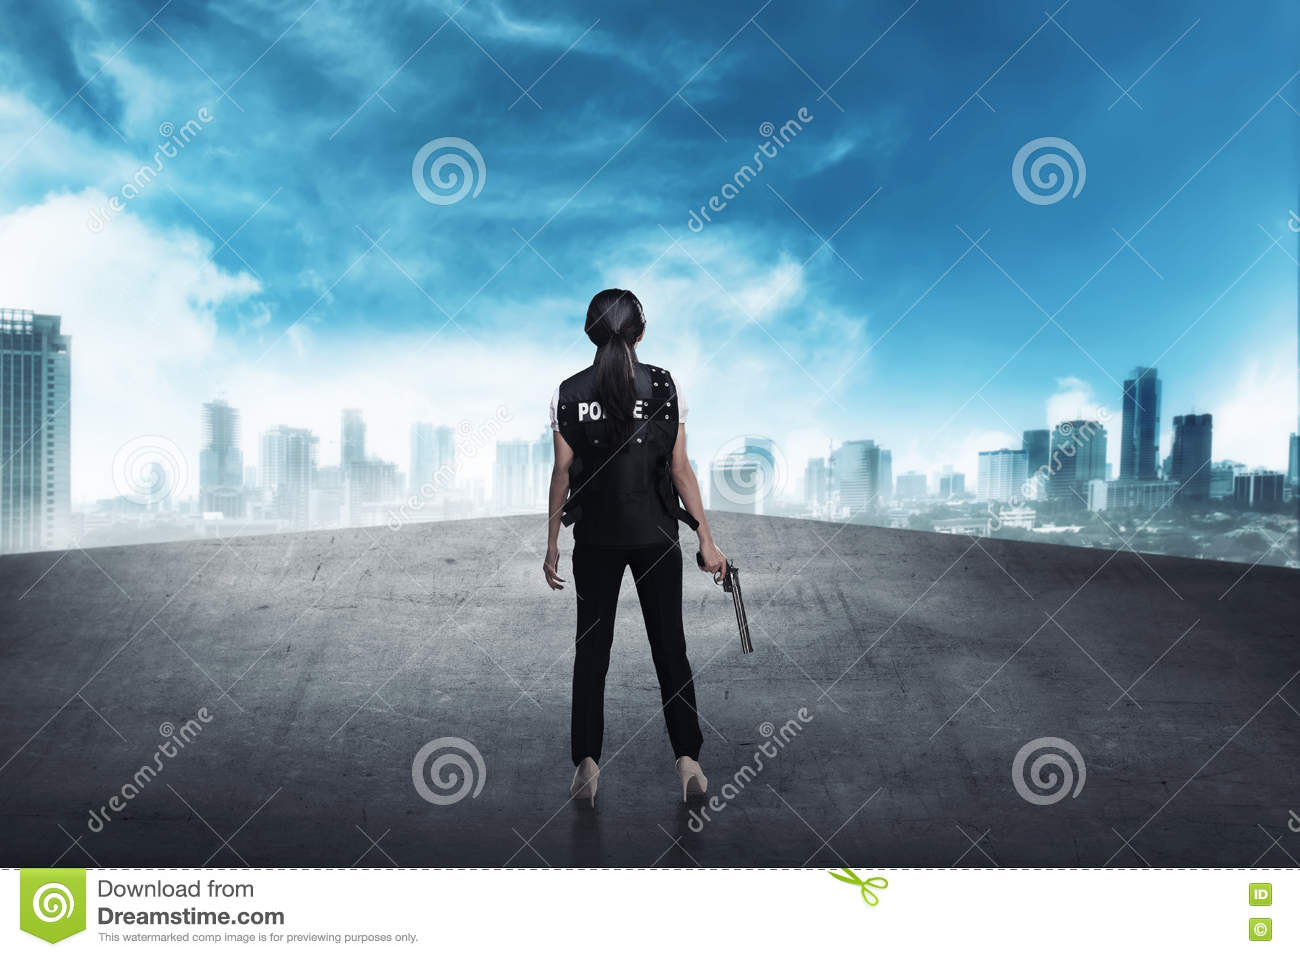 Police woman standing on the building rooftop